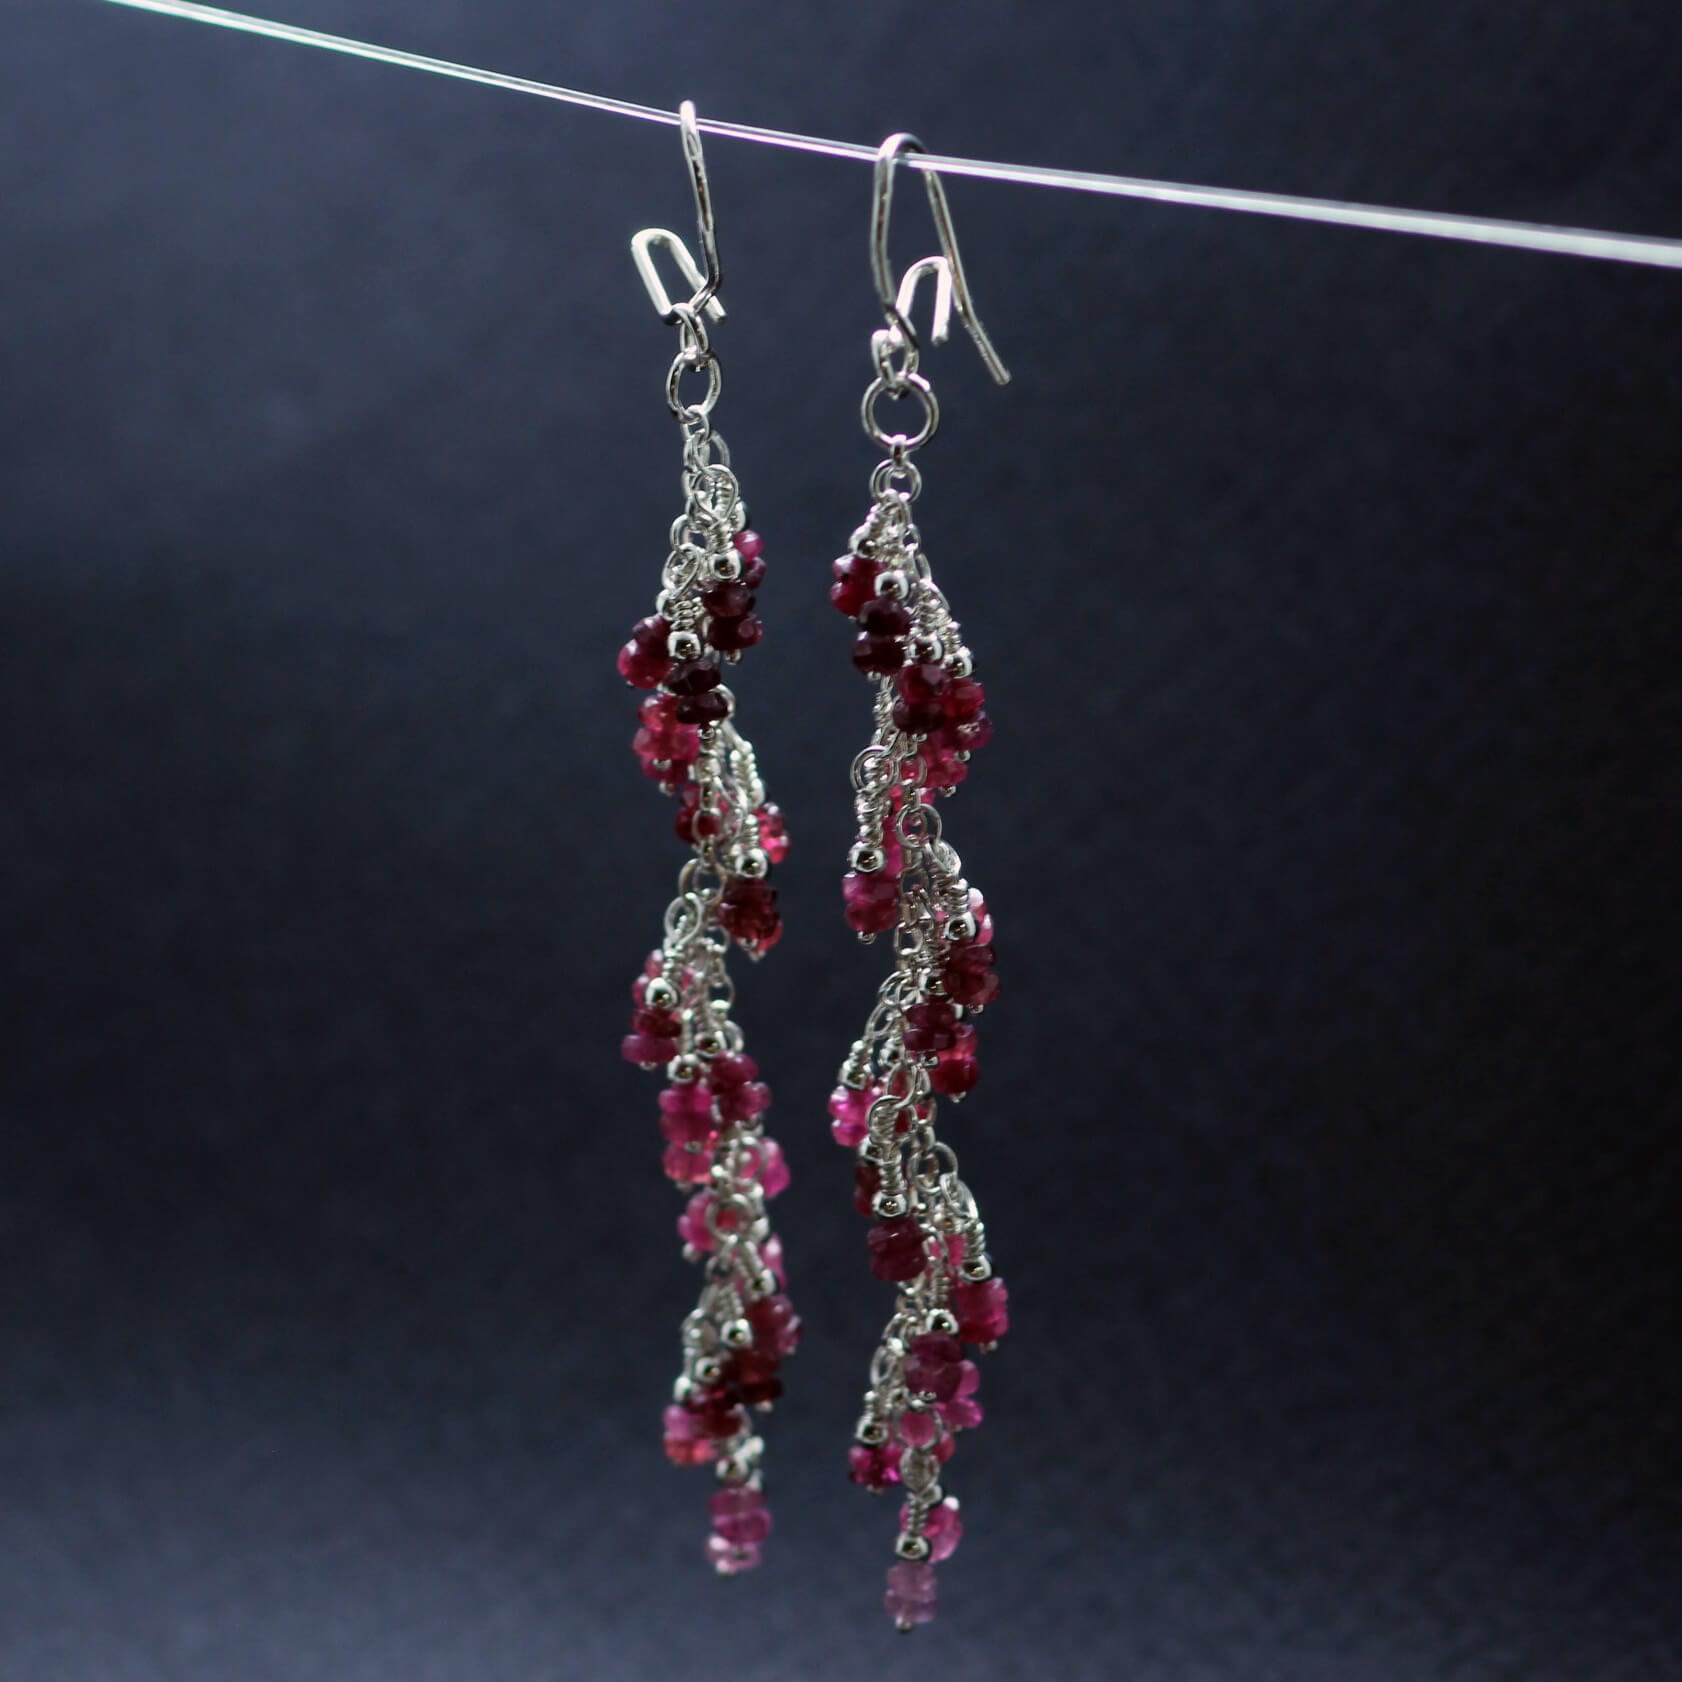 Ruby and Pink Sapphire gemstone Silver earrings, handcrafted by Sophie Saunders.